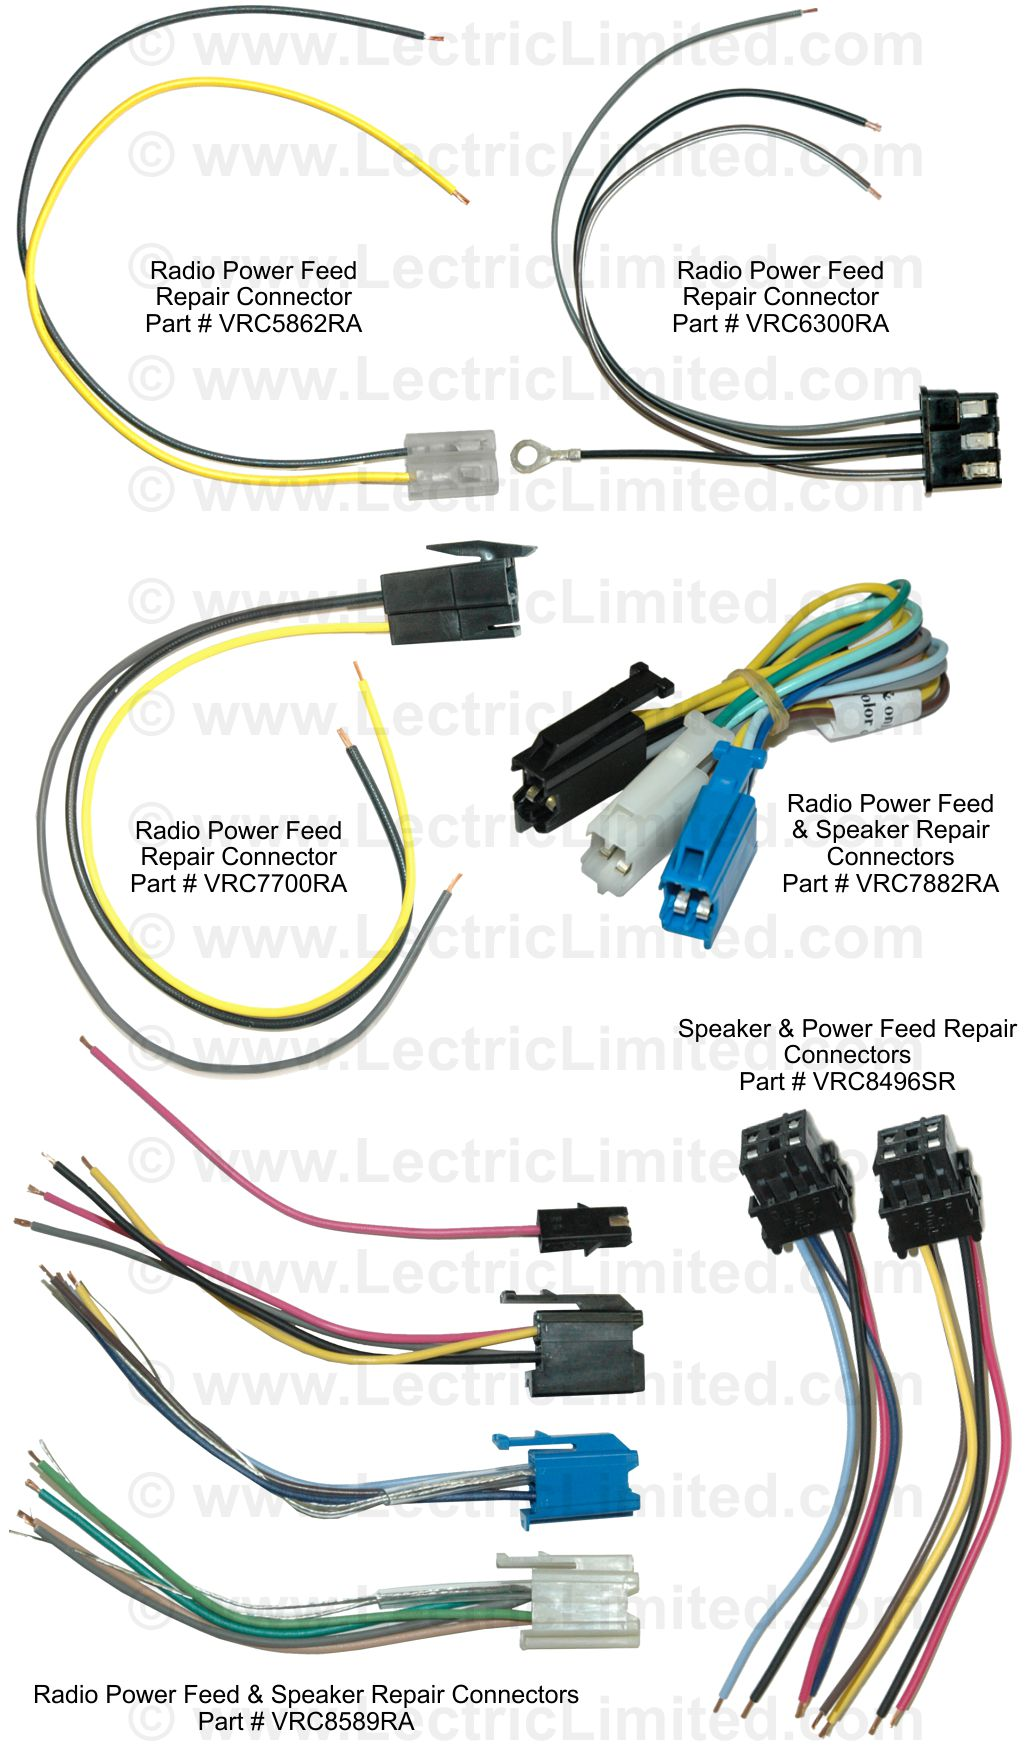 1976 corvette fuse box connectors wiring harness 1979 corvette fuse box diagram 1976 corvette fuse box wire connectors wiring diagram 1981 corvette fuse box diagram 1976 corvette fuse